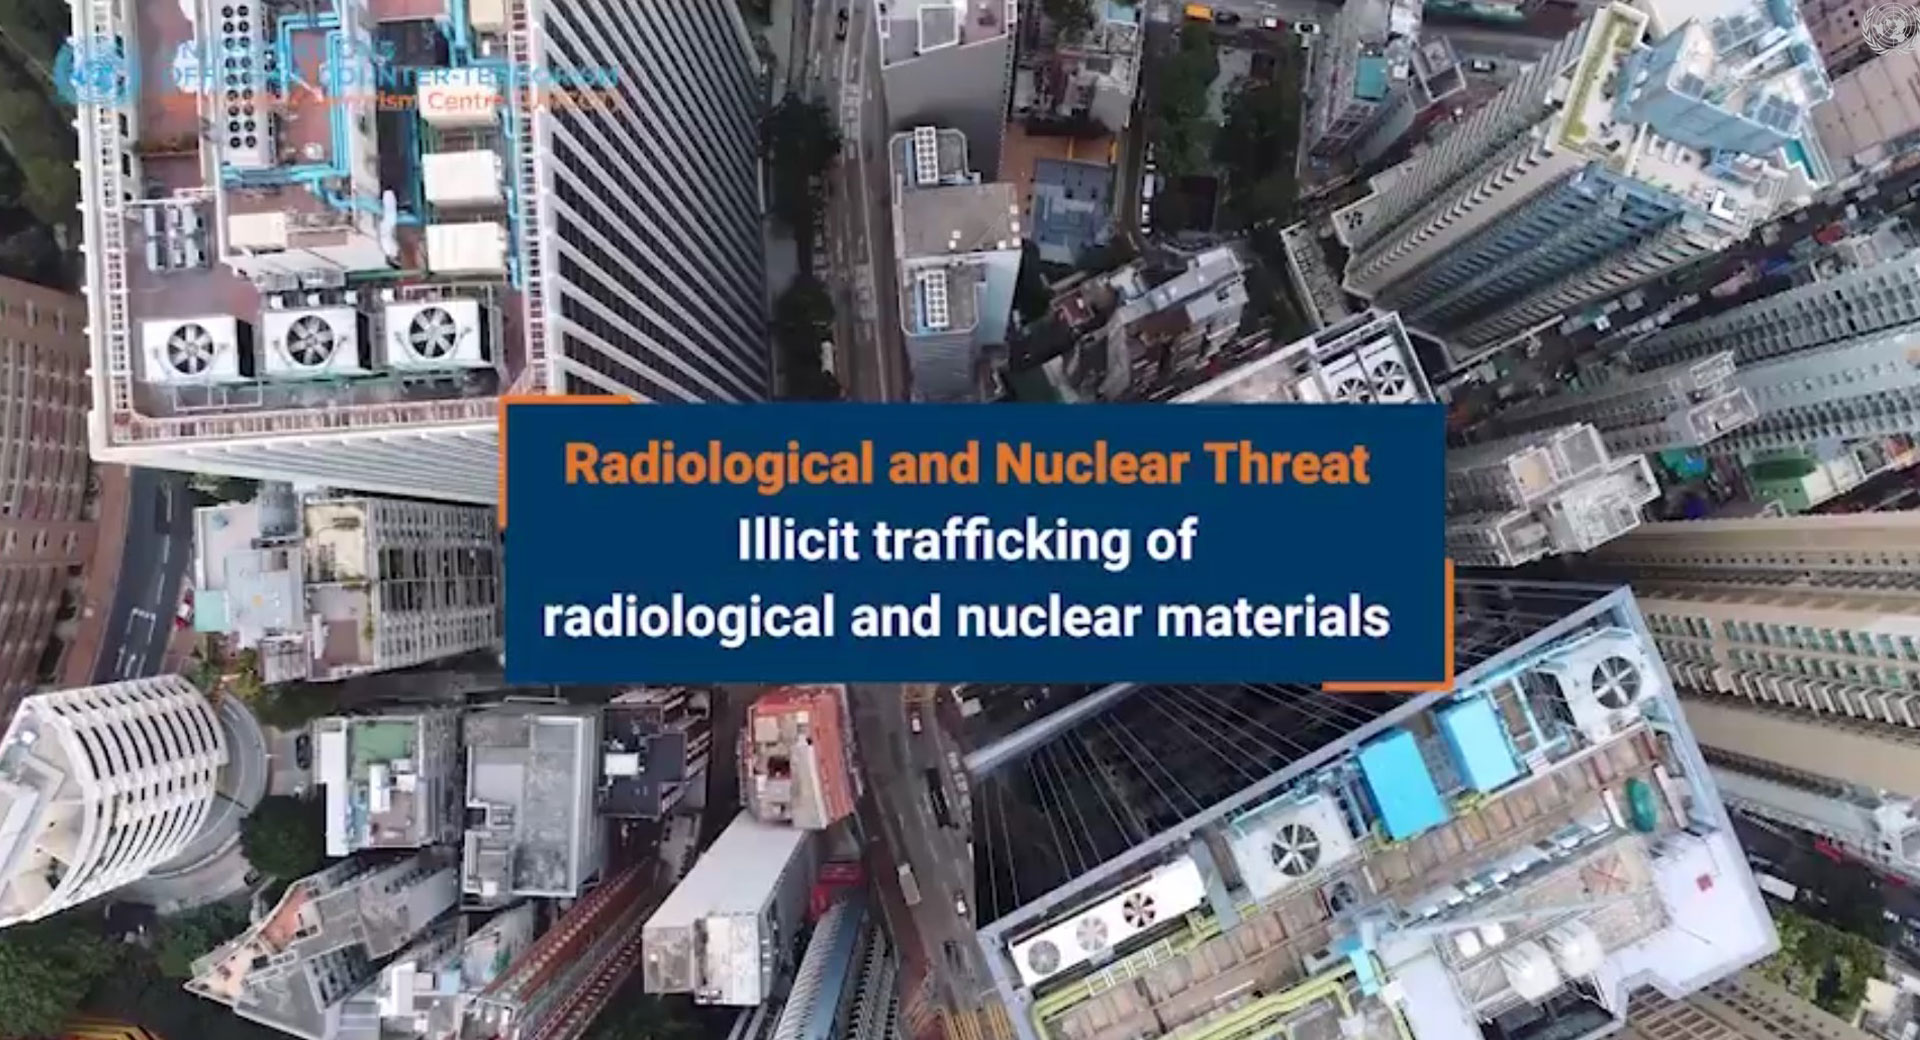 Aerial view of skyscrapers - Radiological and Nuclear Threat